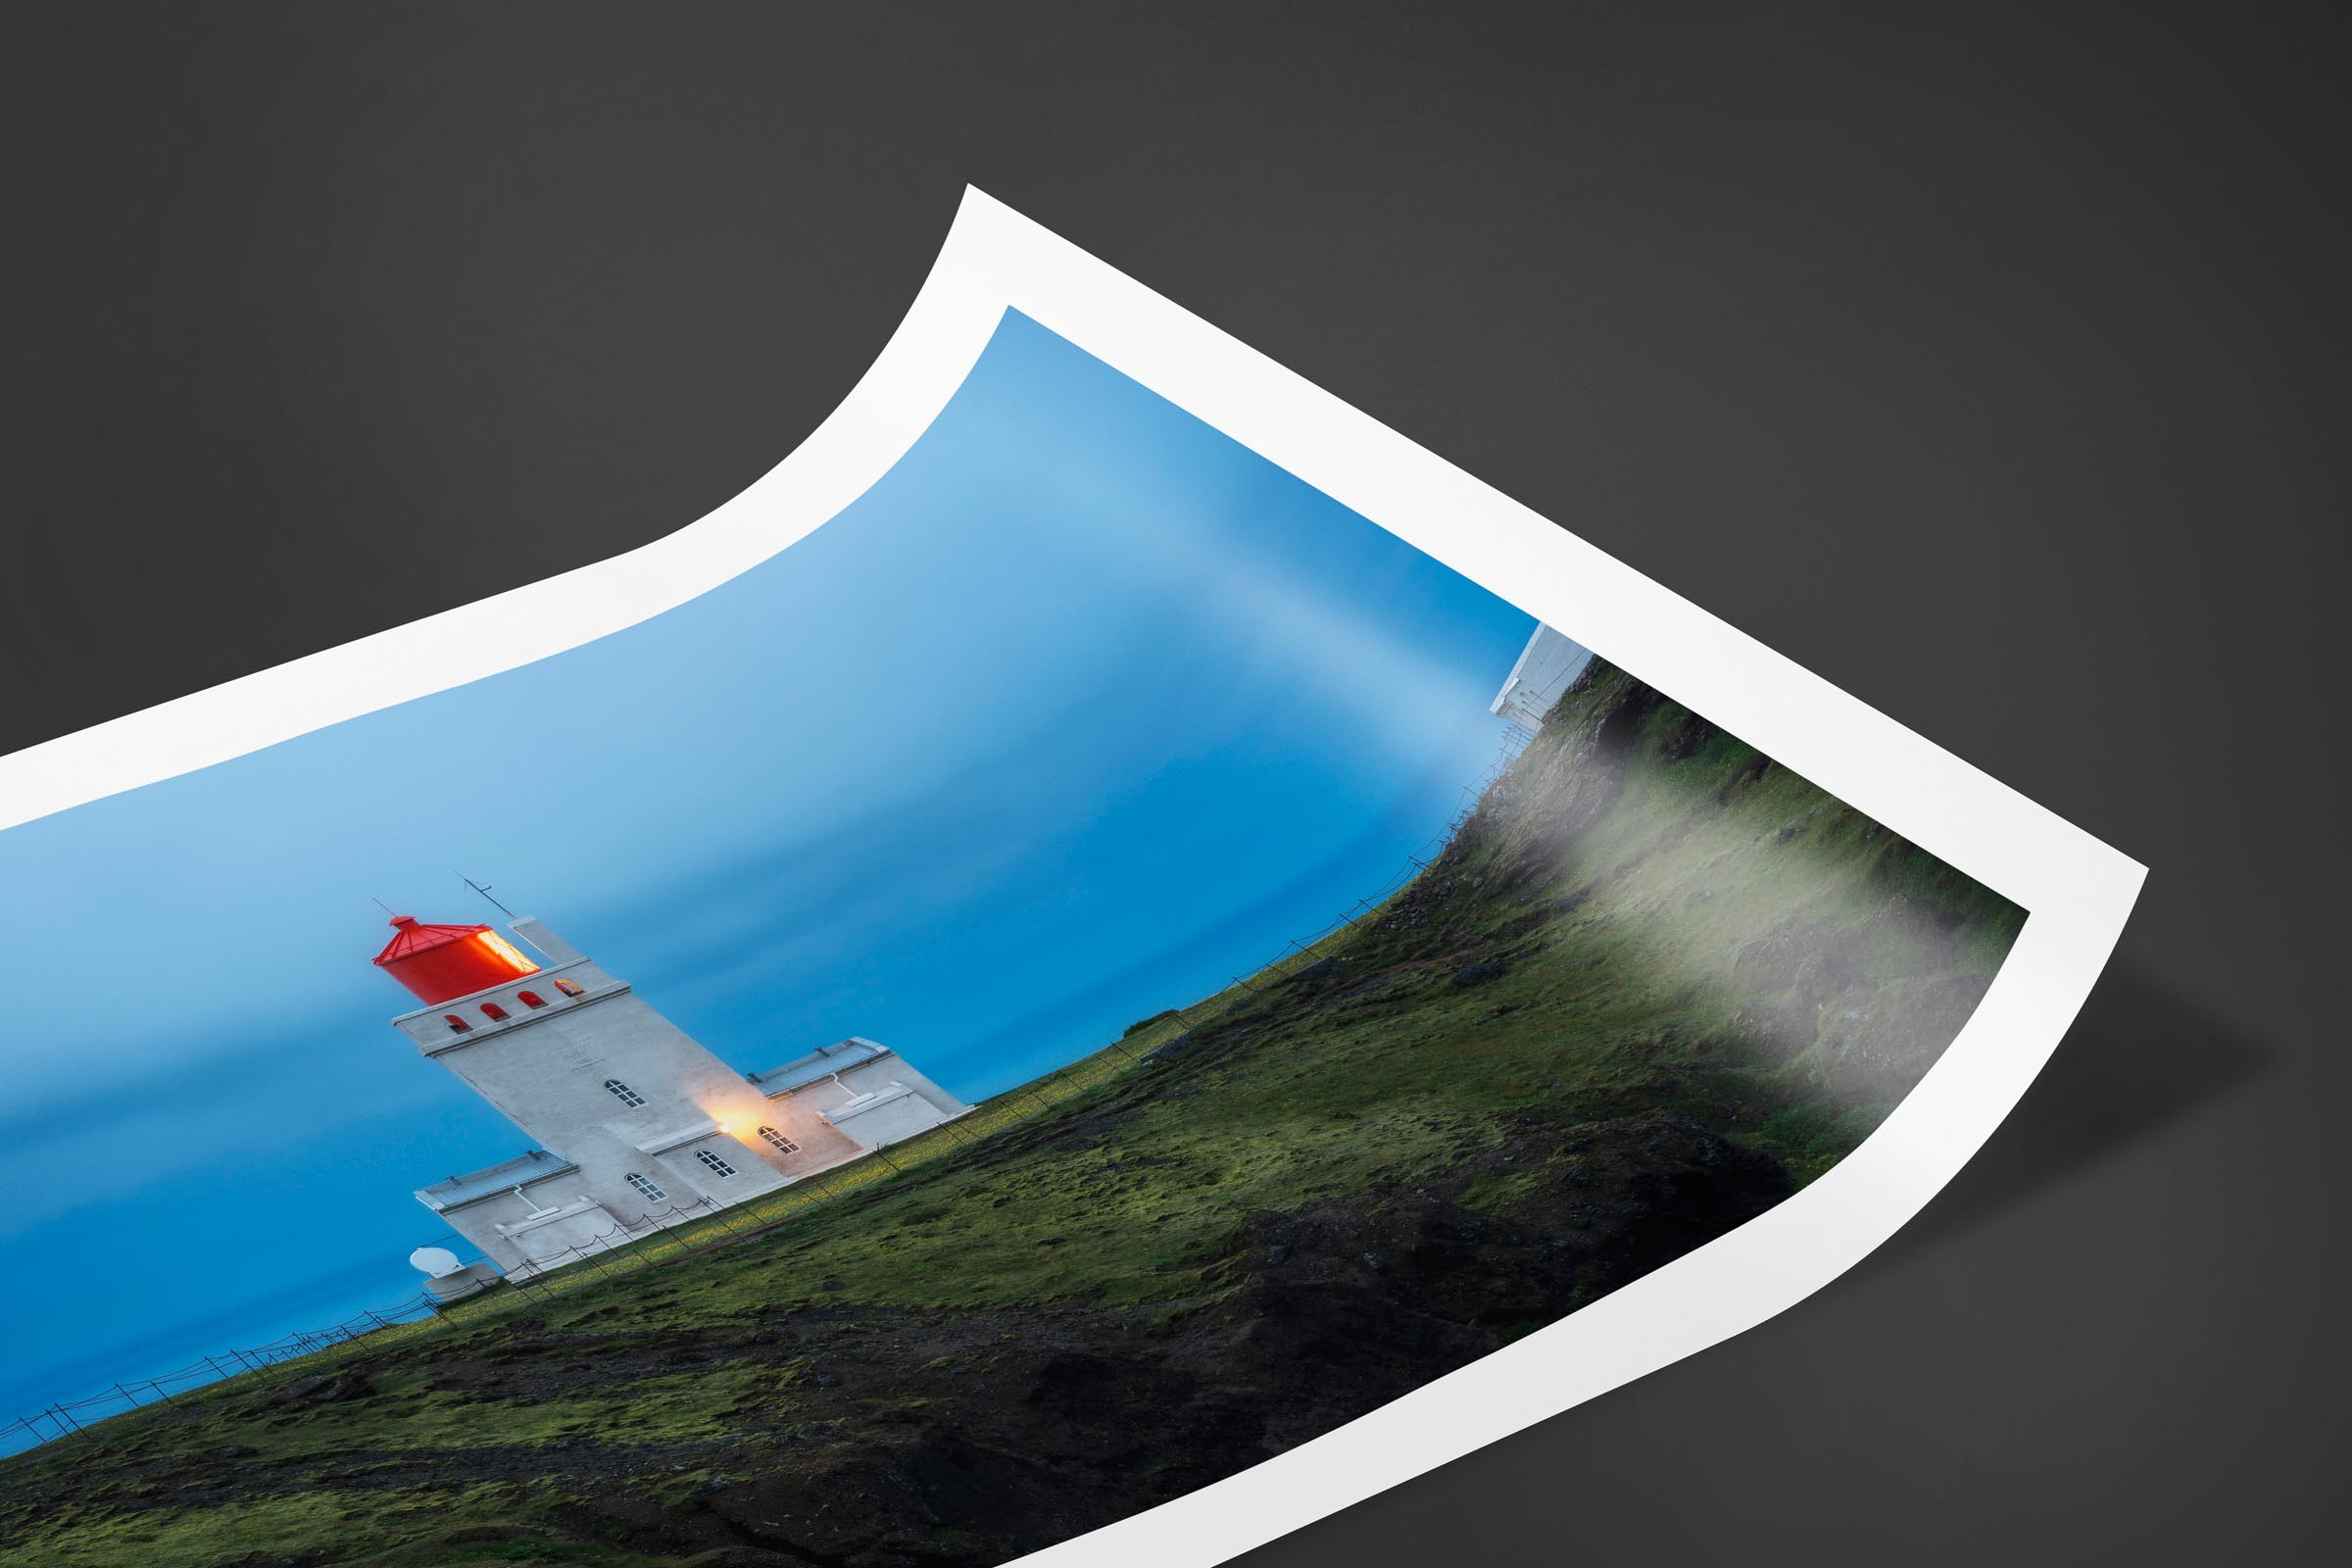 Fine art limited edition print of Dyrholaey Lighthouse in Vik, Iceland by Brent Goldman Photography